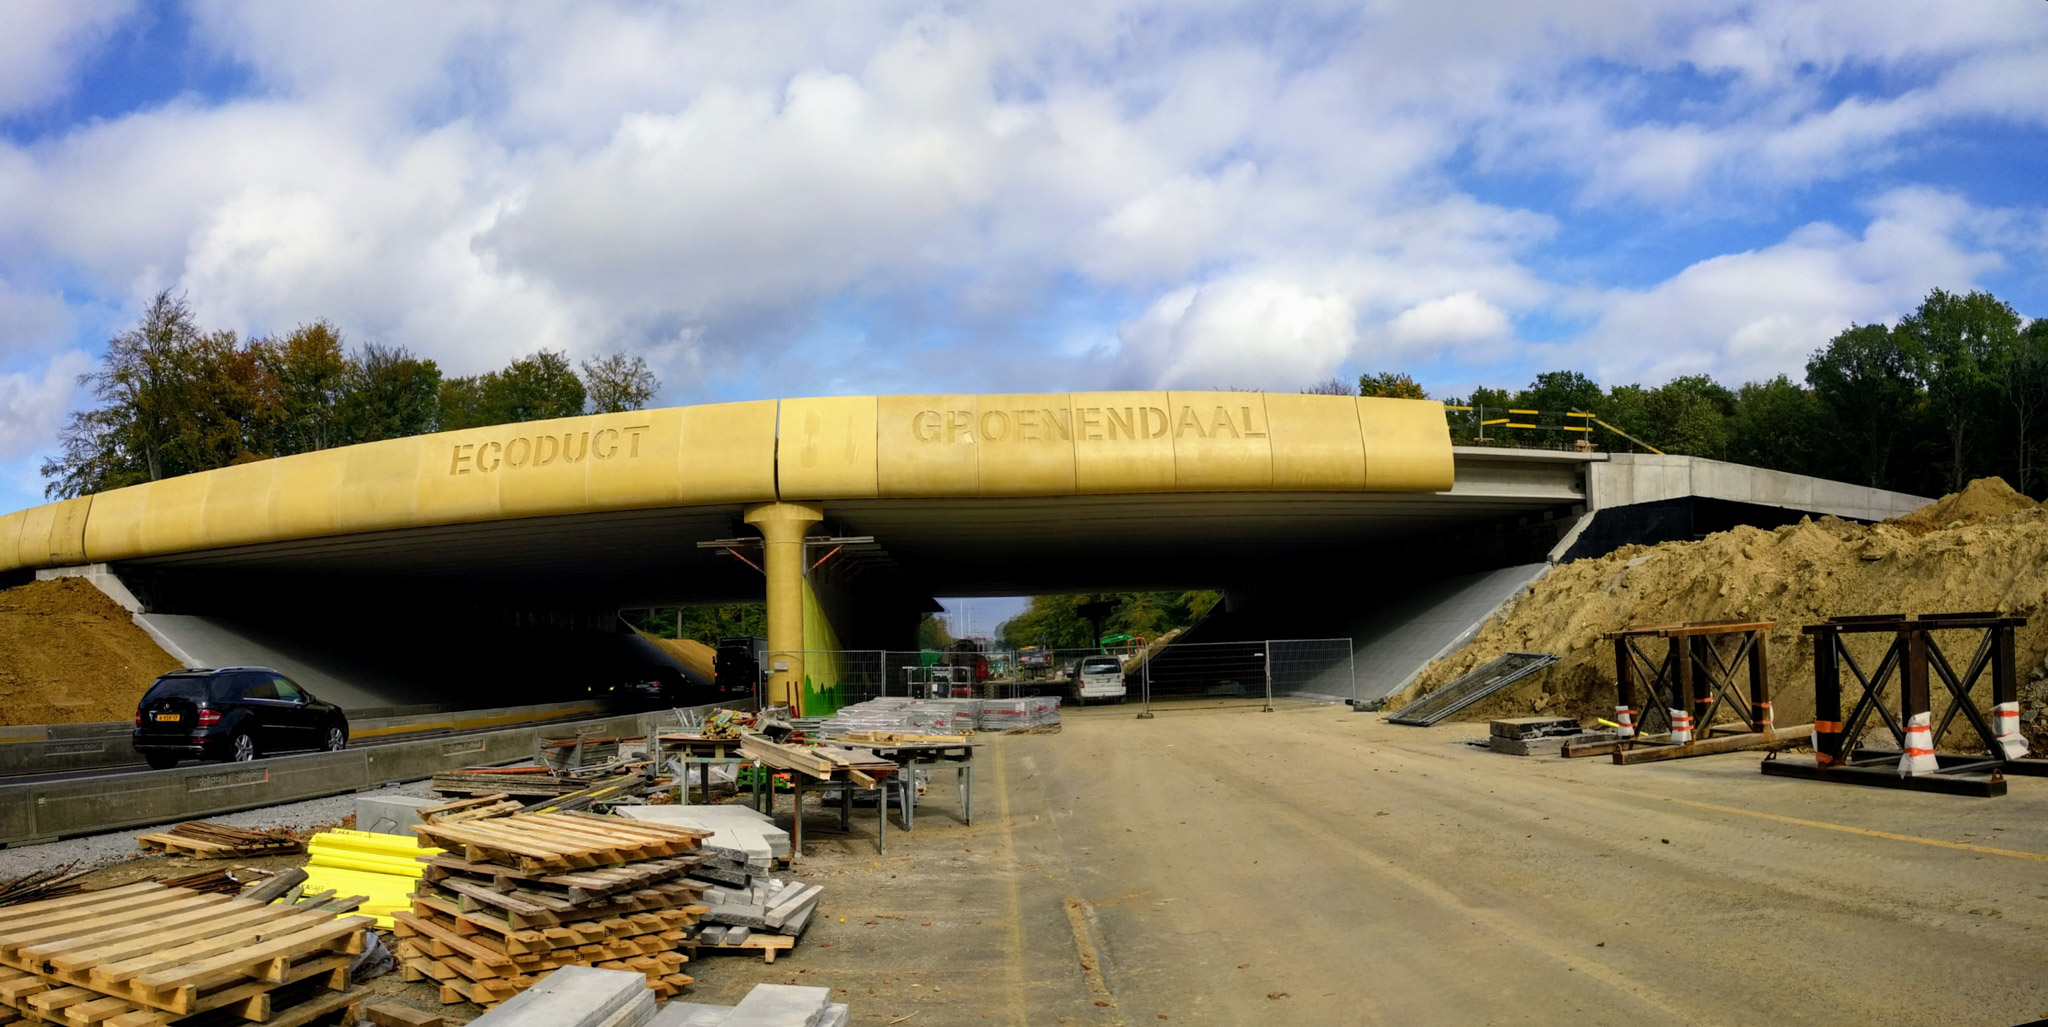 The Ecoduct Groenendaal in Belgium, seen here under construction as part of the LIFE+OZON project, helps wildlife cross the Brussels Ring Road.